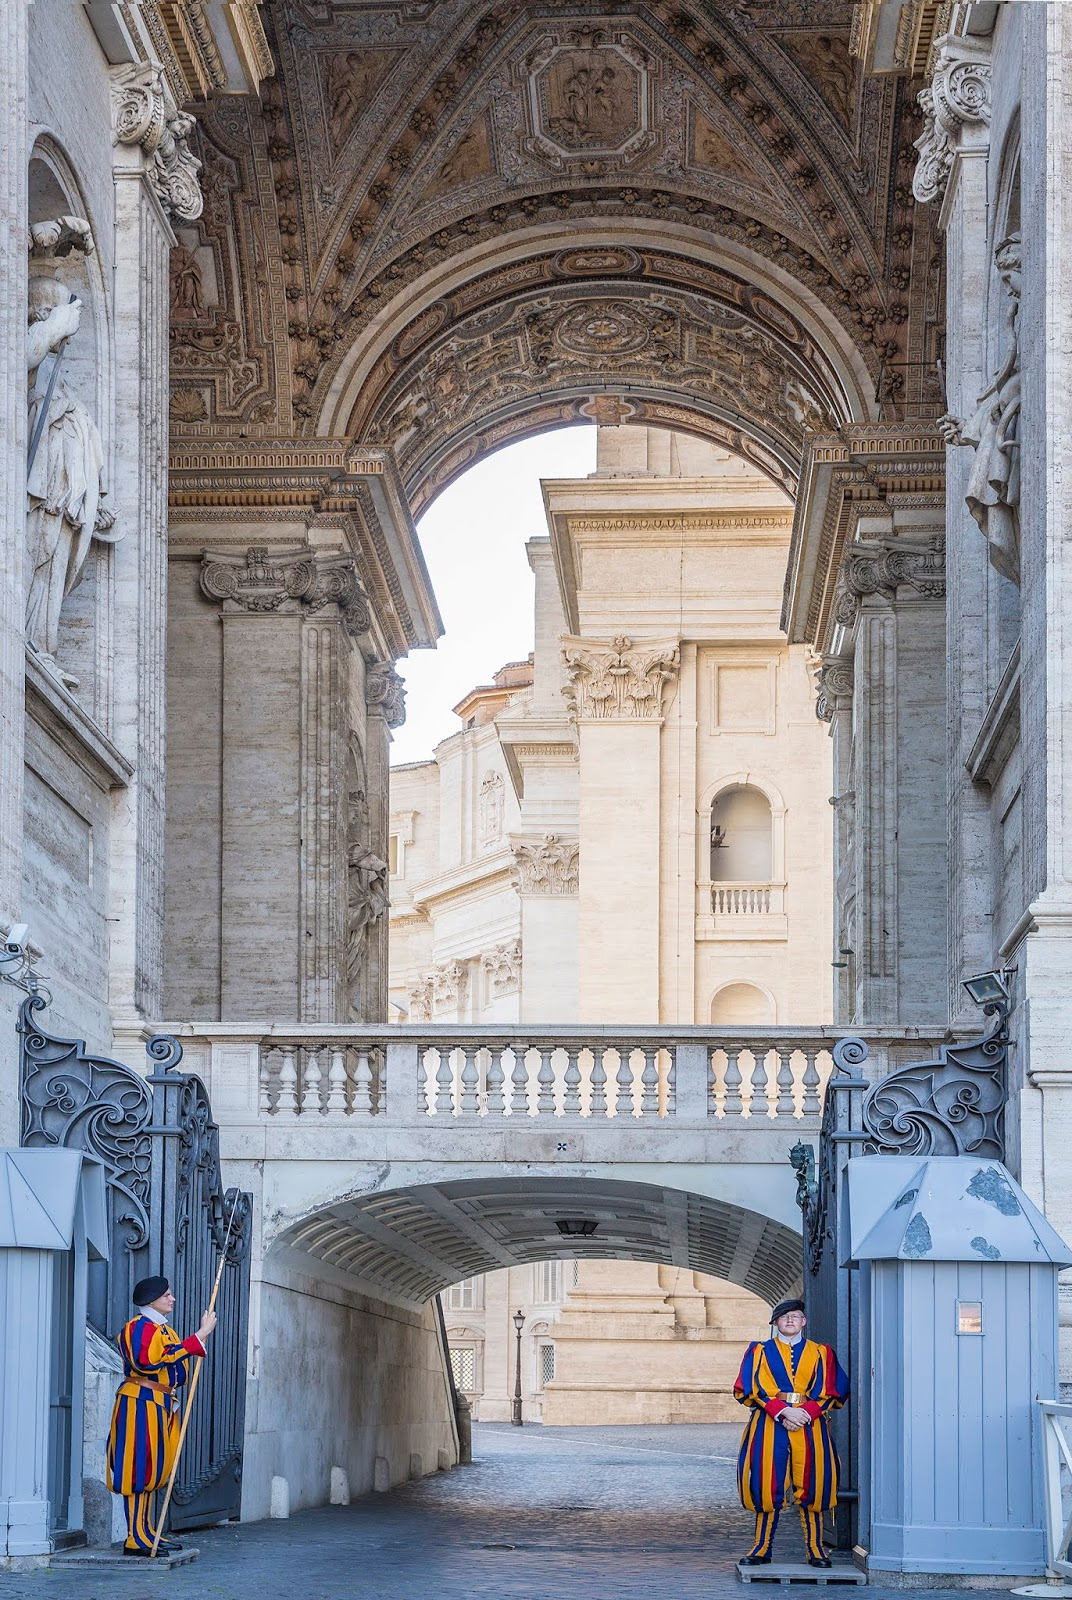 Rome, Italy by Posh, Broke, & Bored - Swiss Guards at St Peter's Basilica